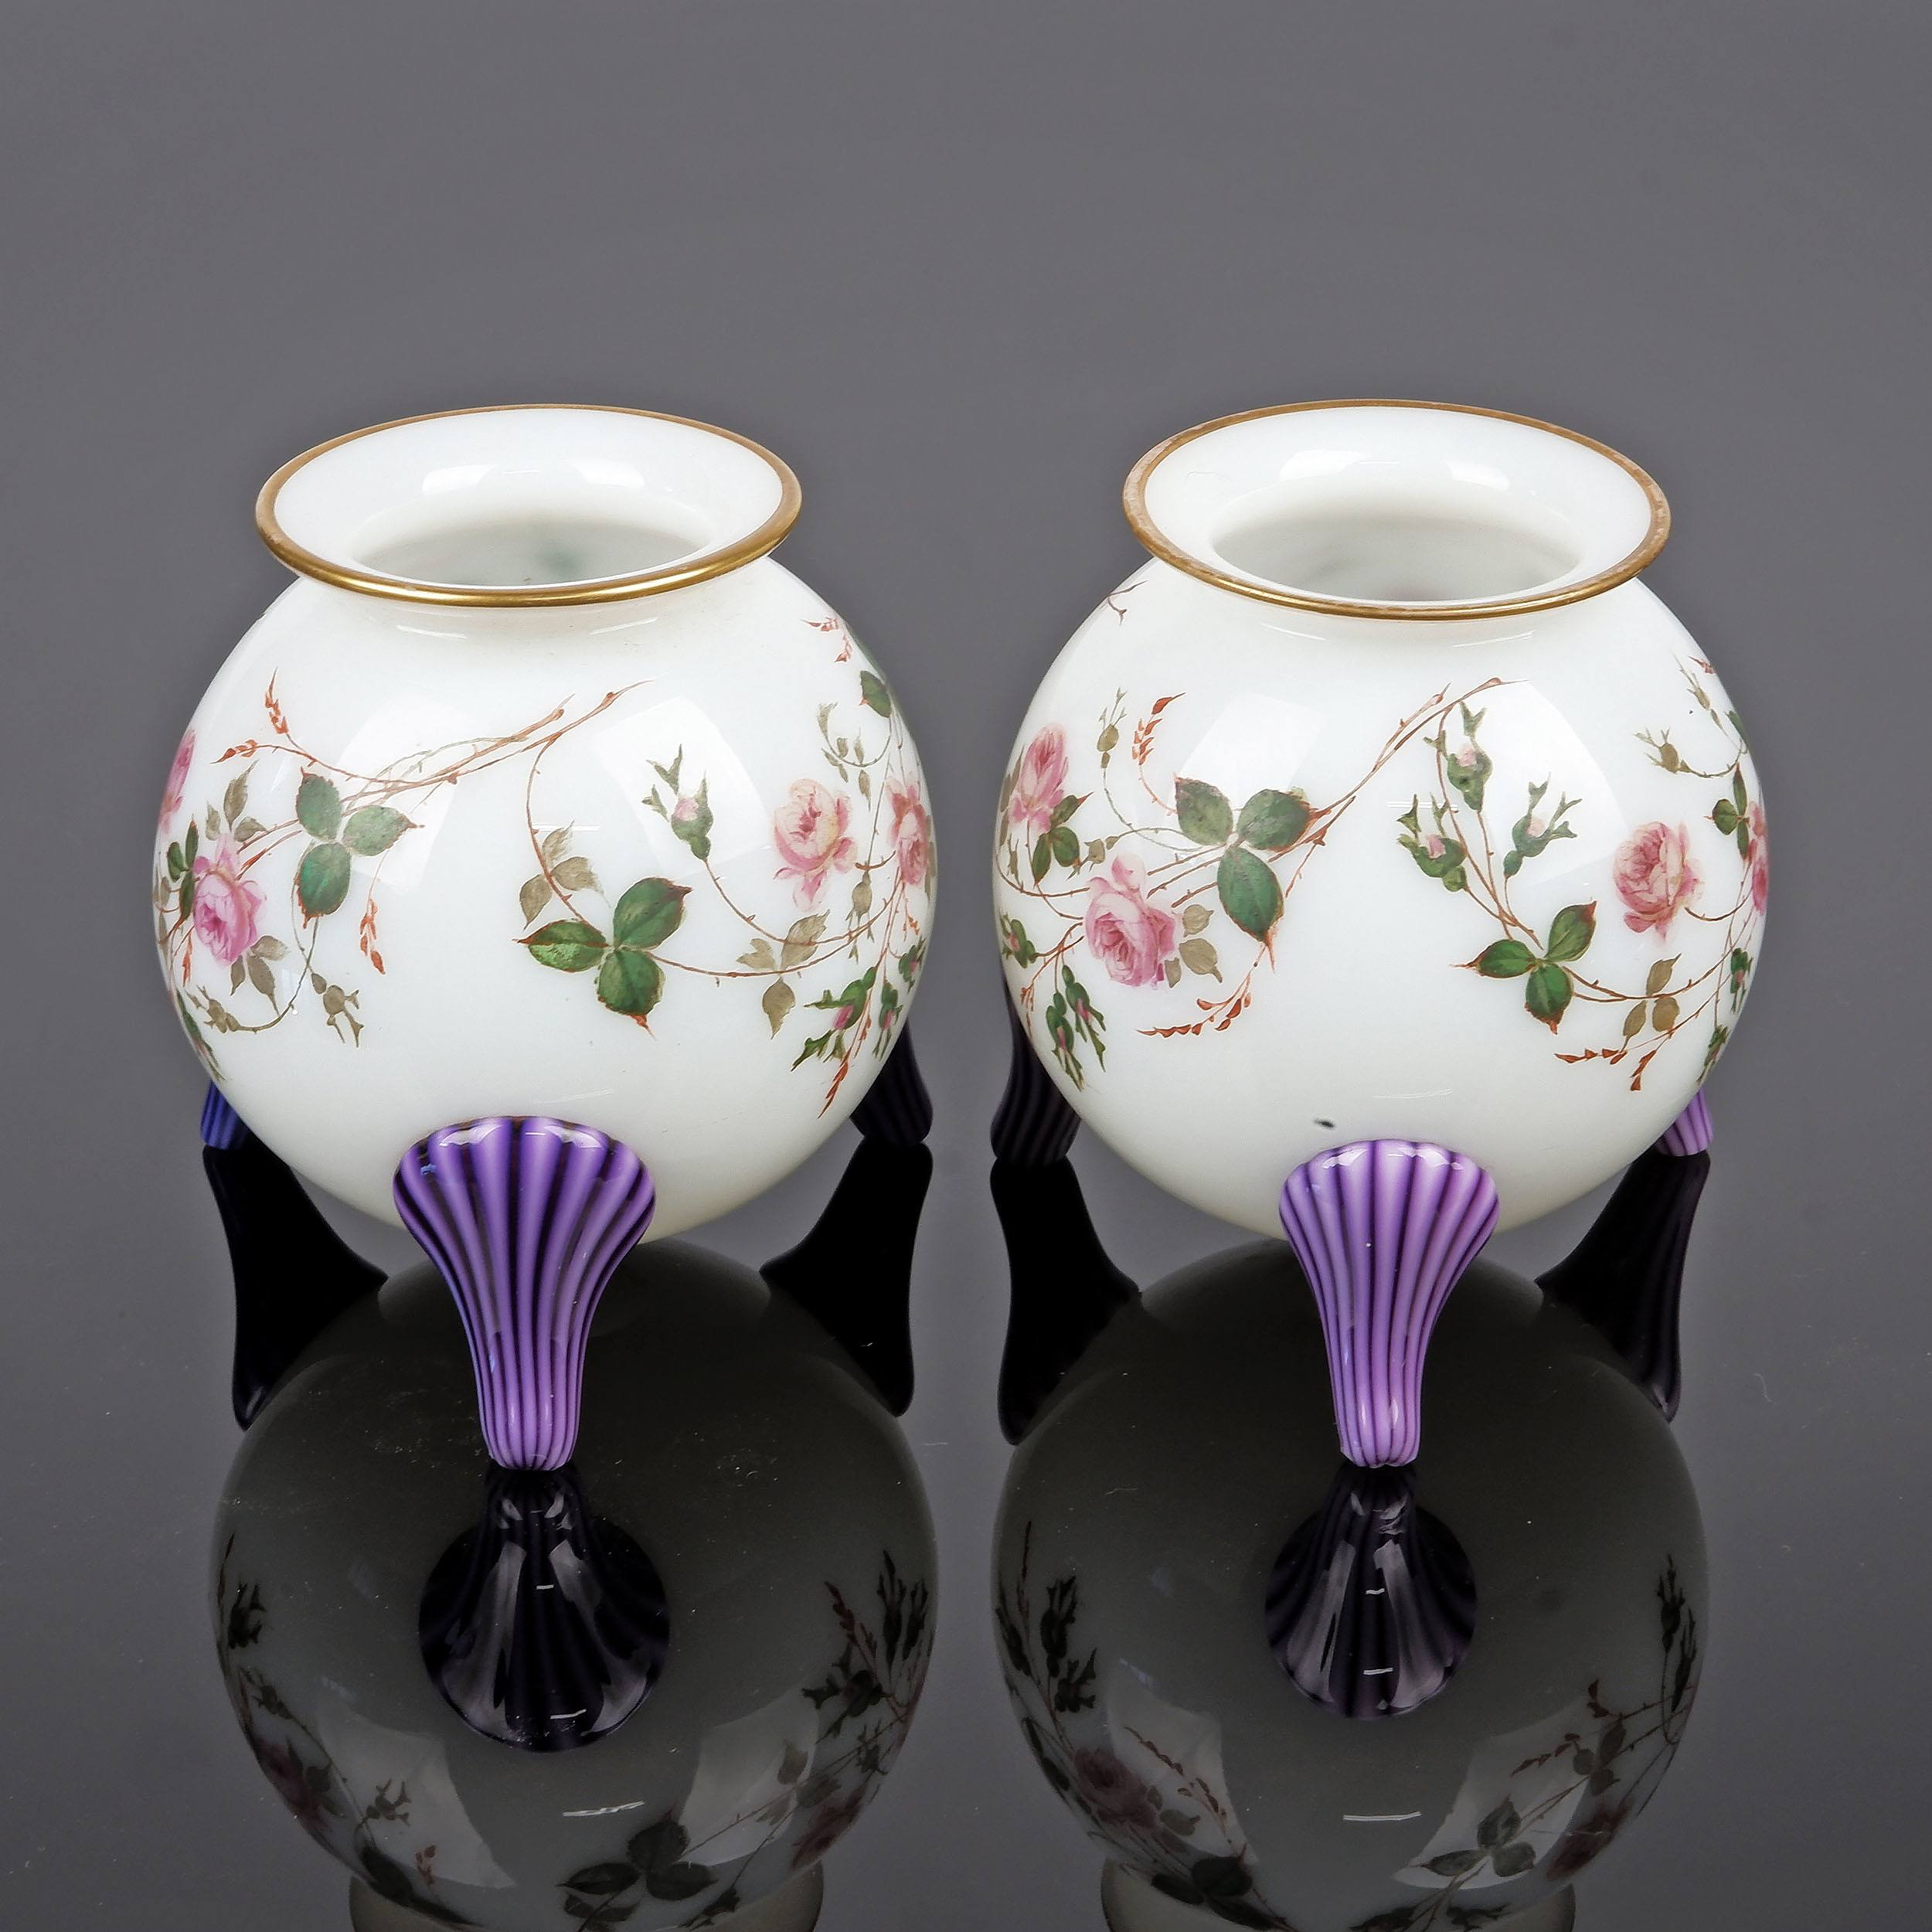 'Pair of Superbly Executed Late Victorian Glass Bud Vases on Tripod Feet'